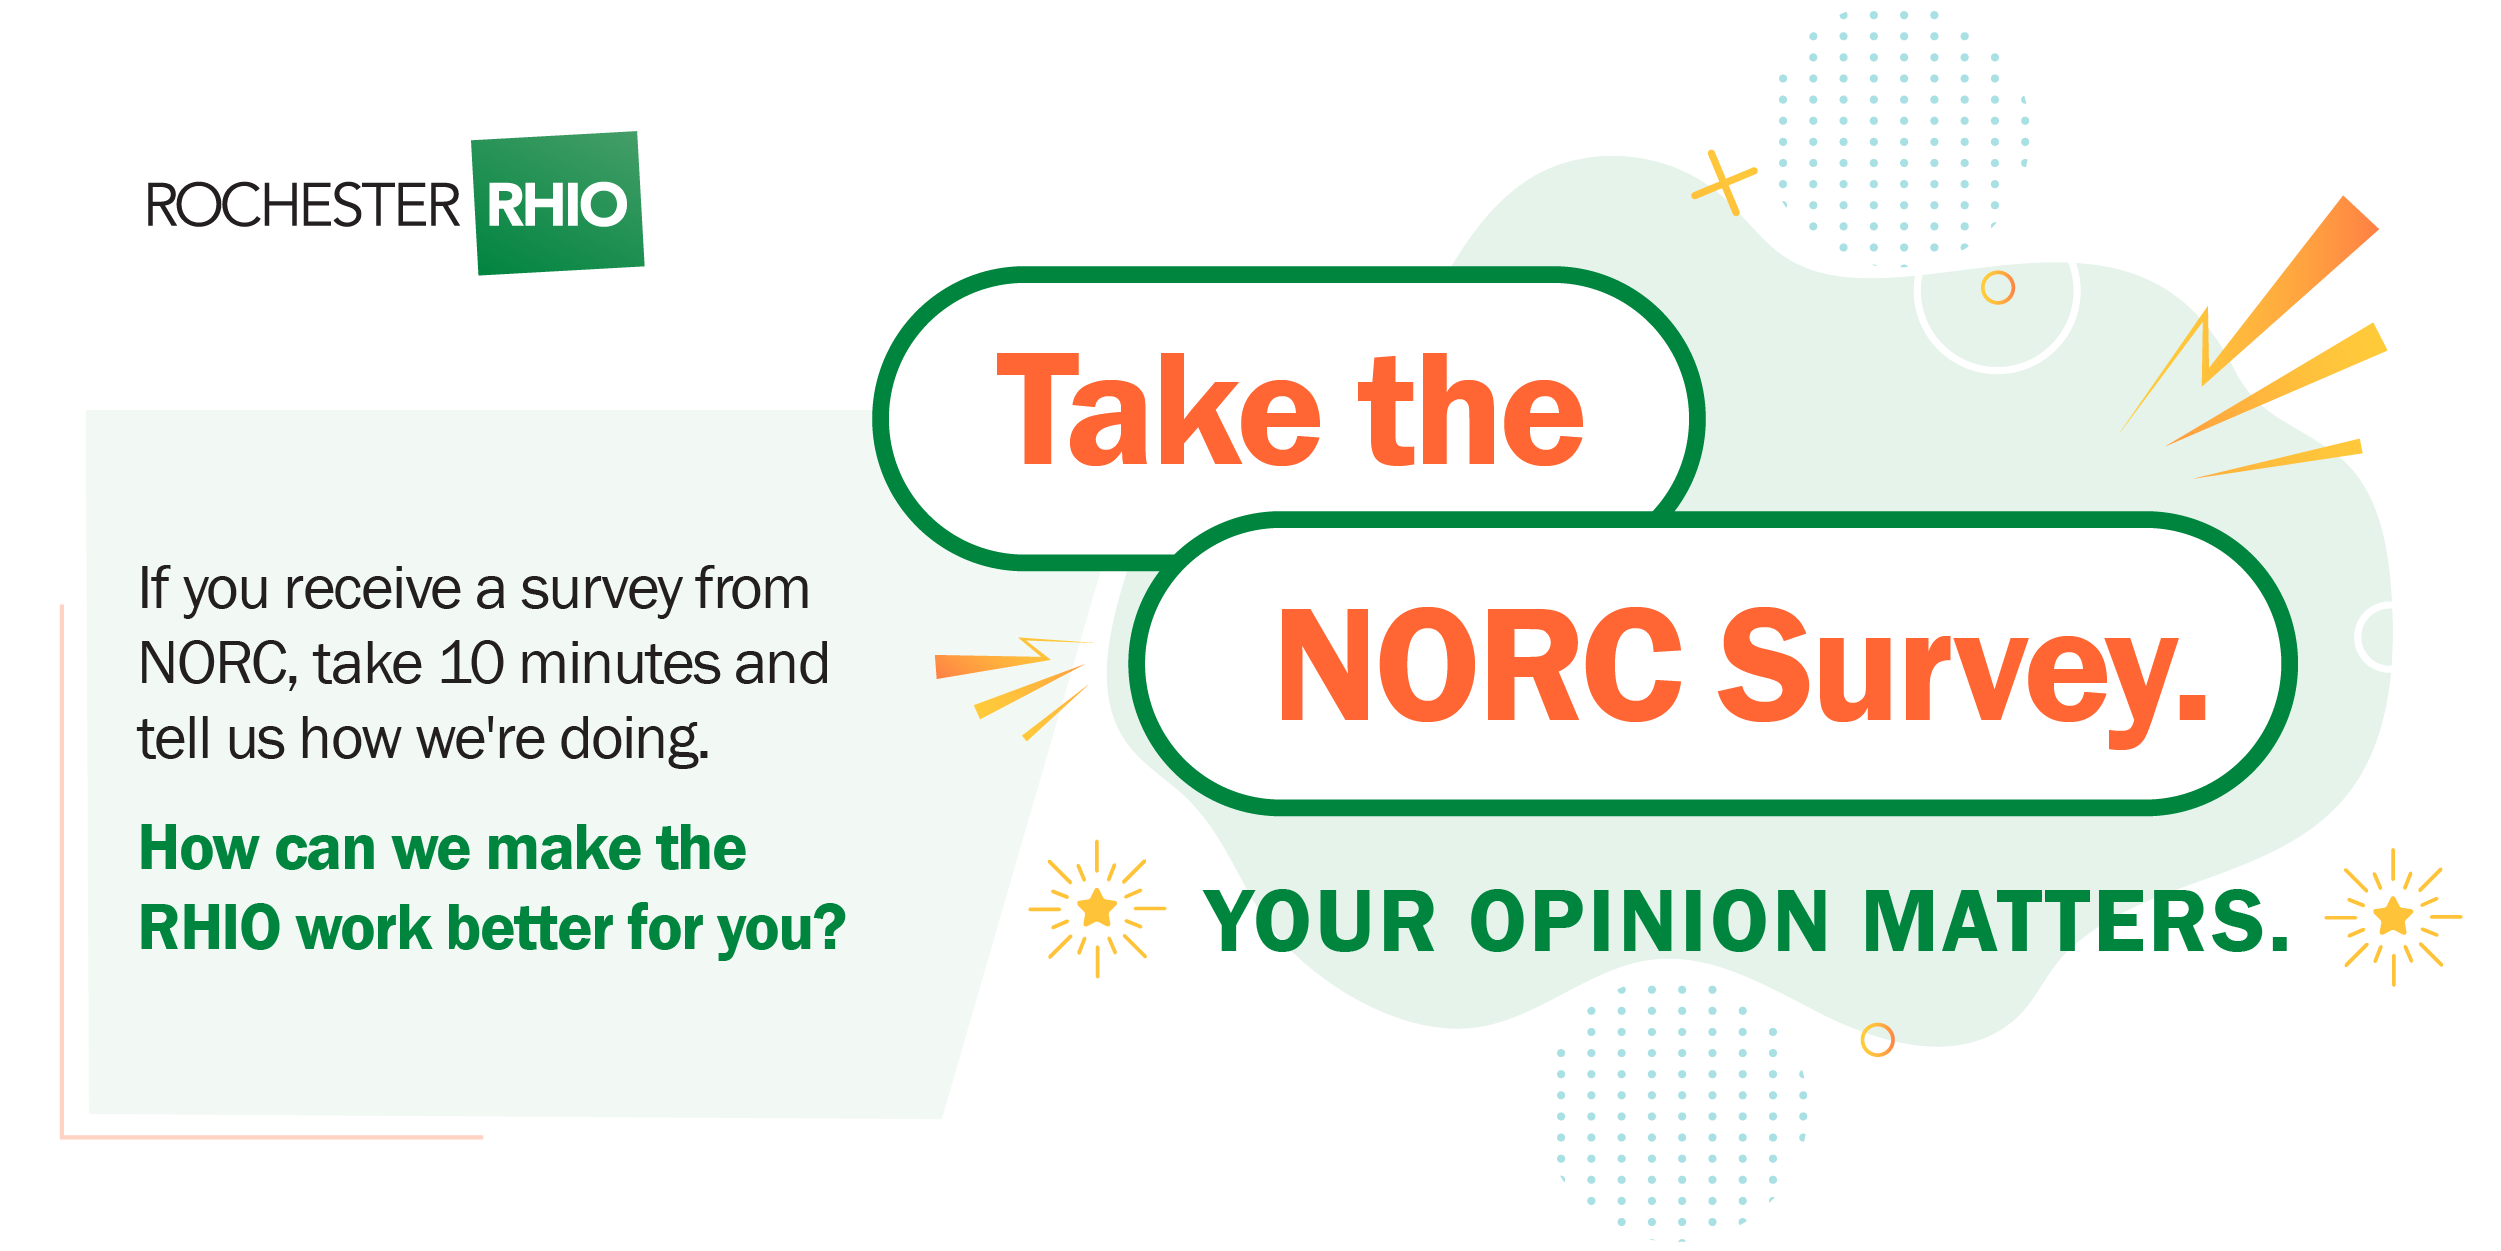 If you receive a survey from NORC, take 10 minutes and tell us how we're doing.